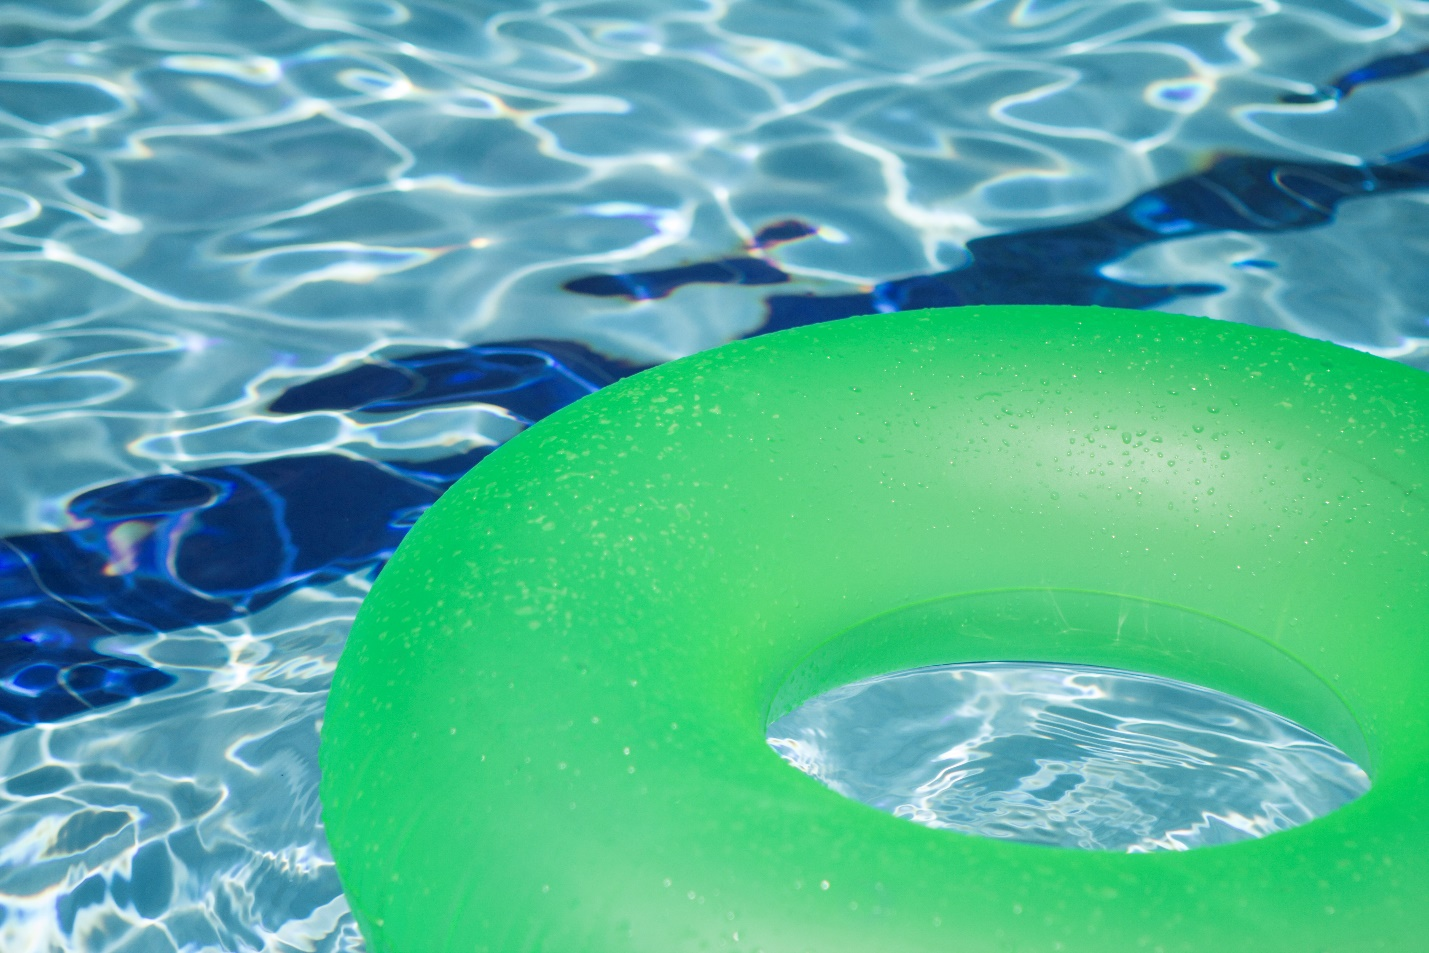 Dallas Above-Ground Pool Defect Lawsuits